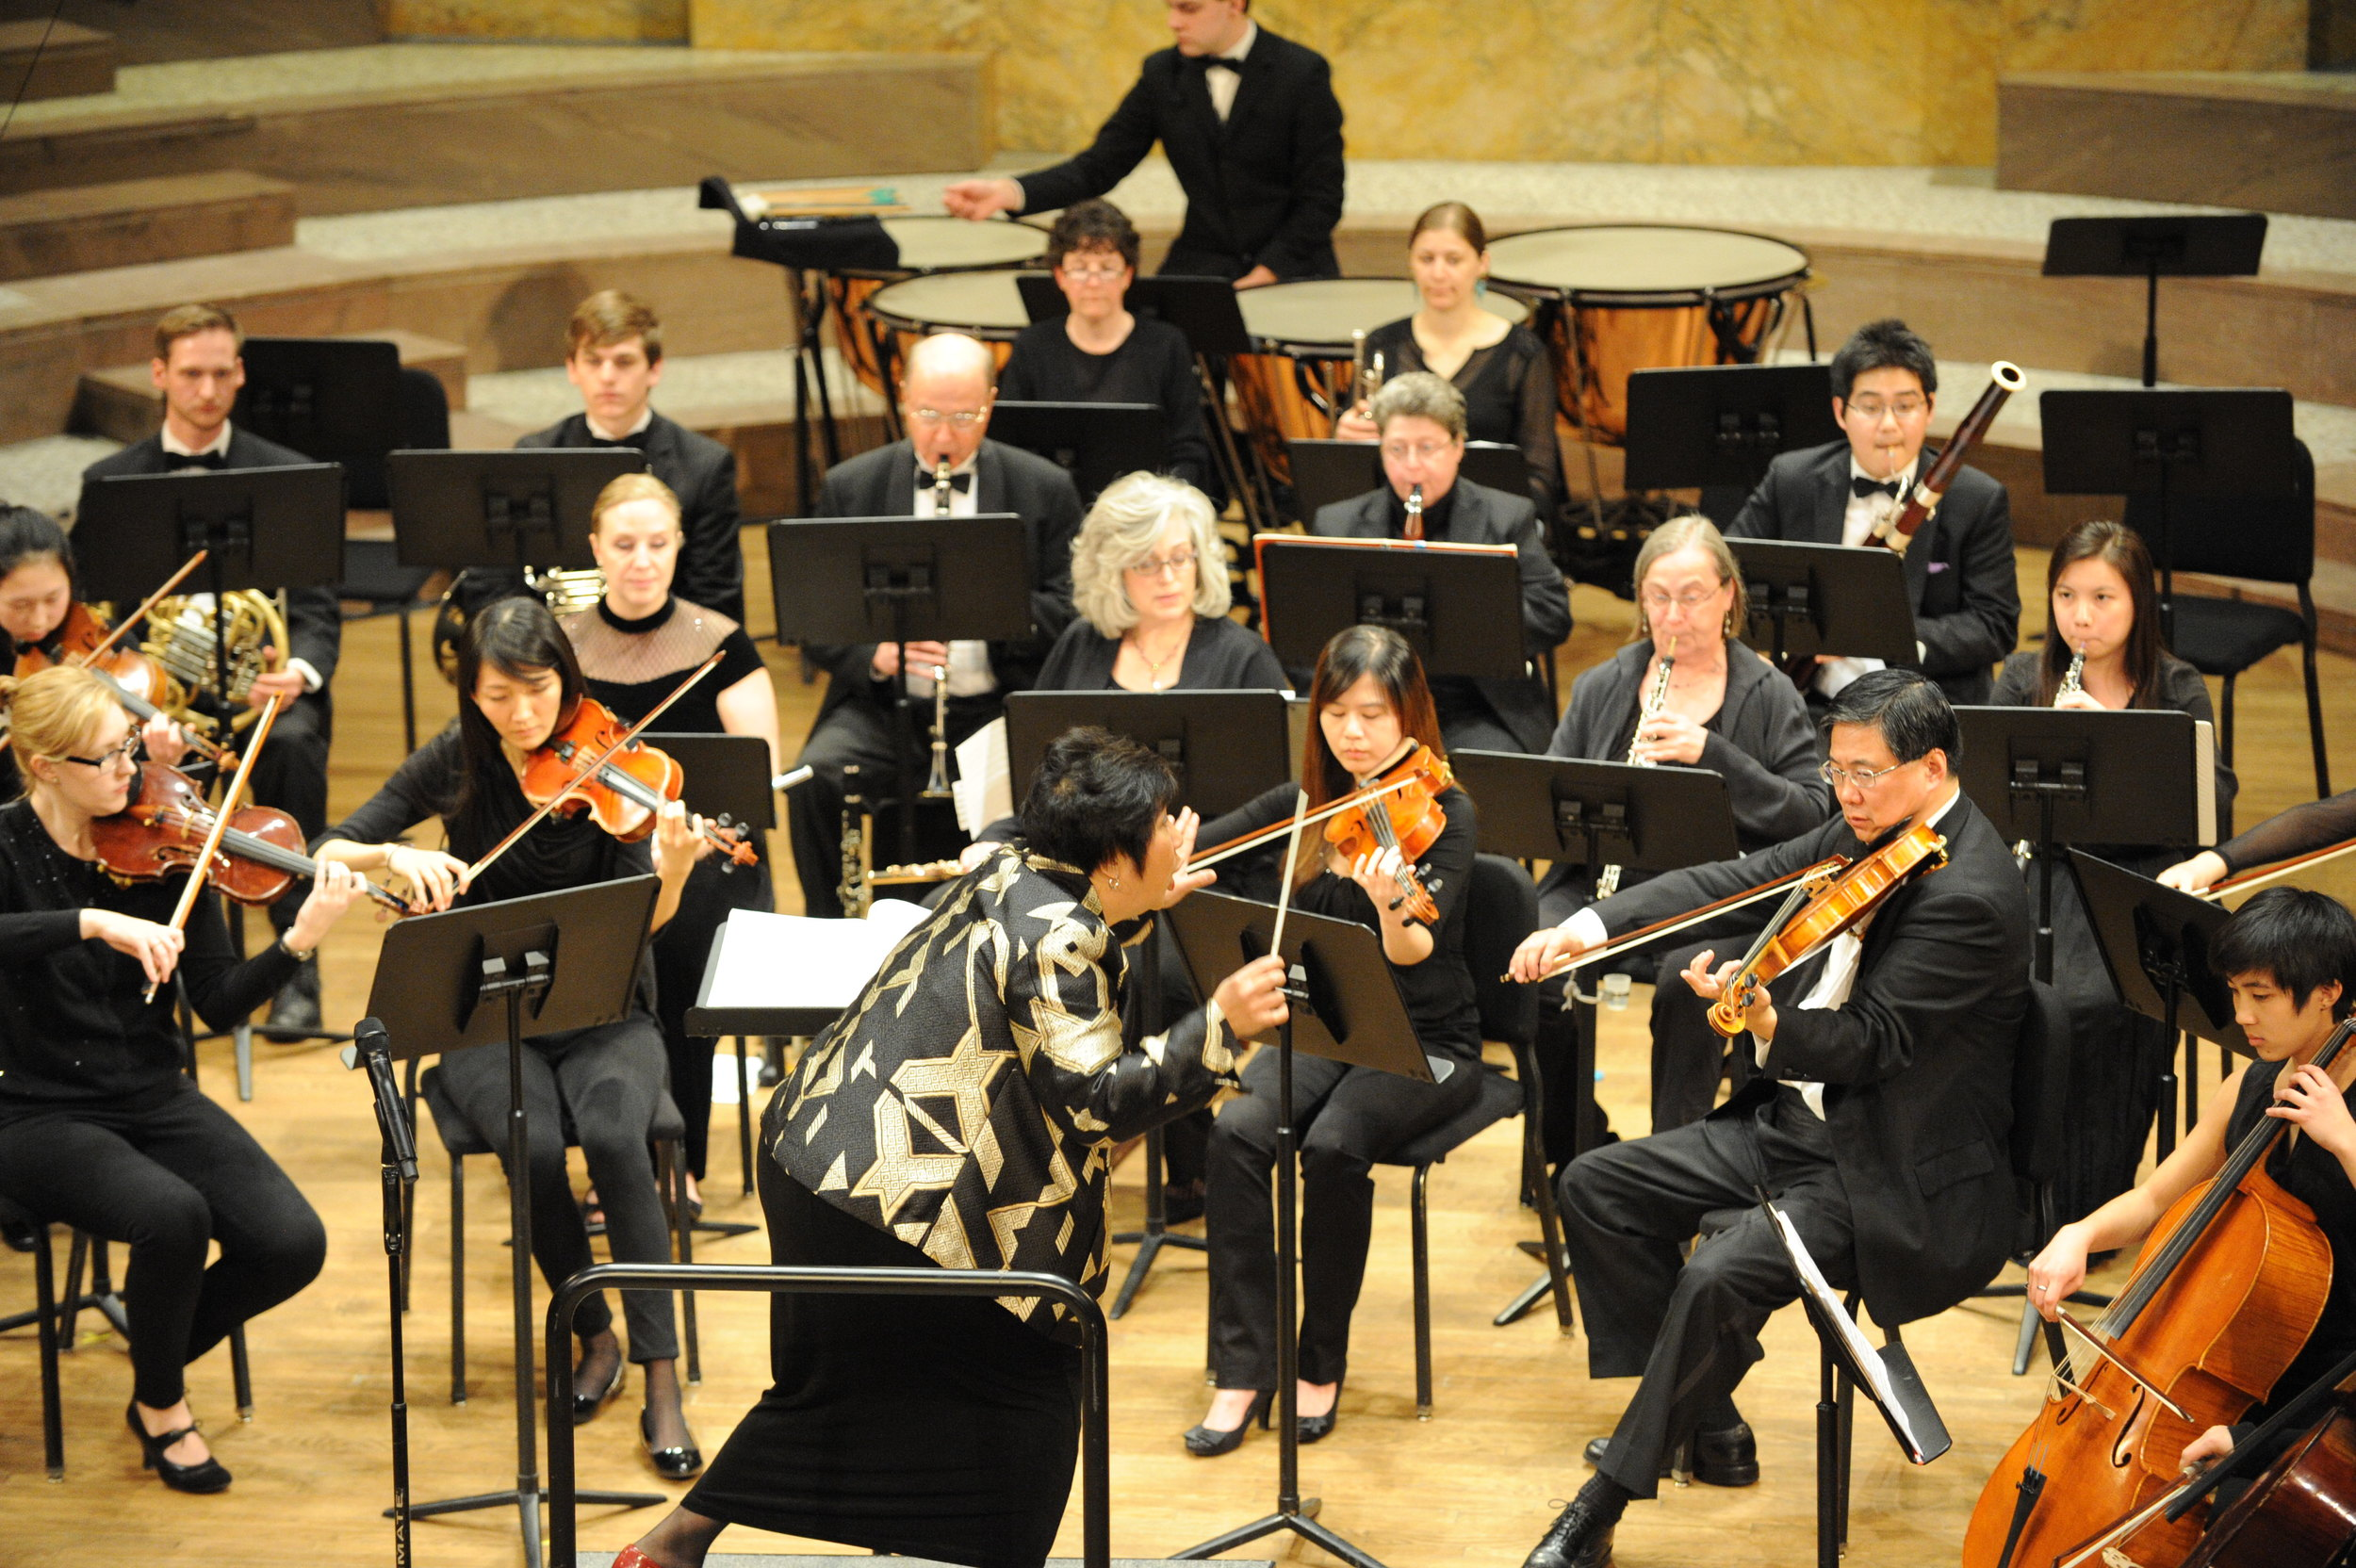 Maestra Lin leads the orchestra in a powerful Beethoven Symphony No. 7